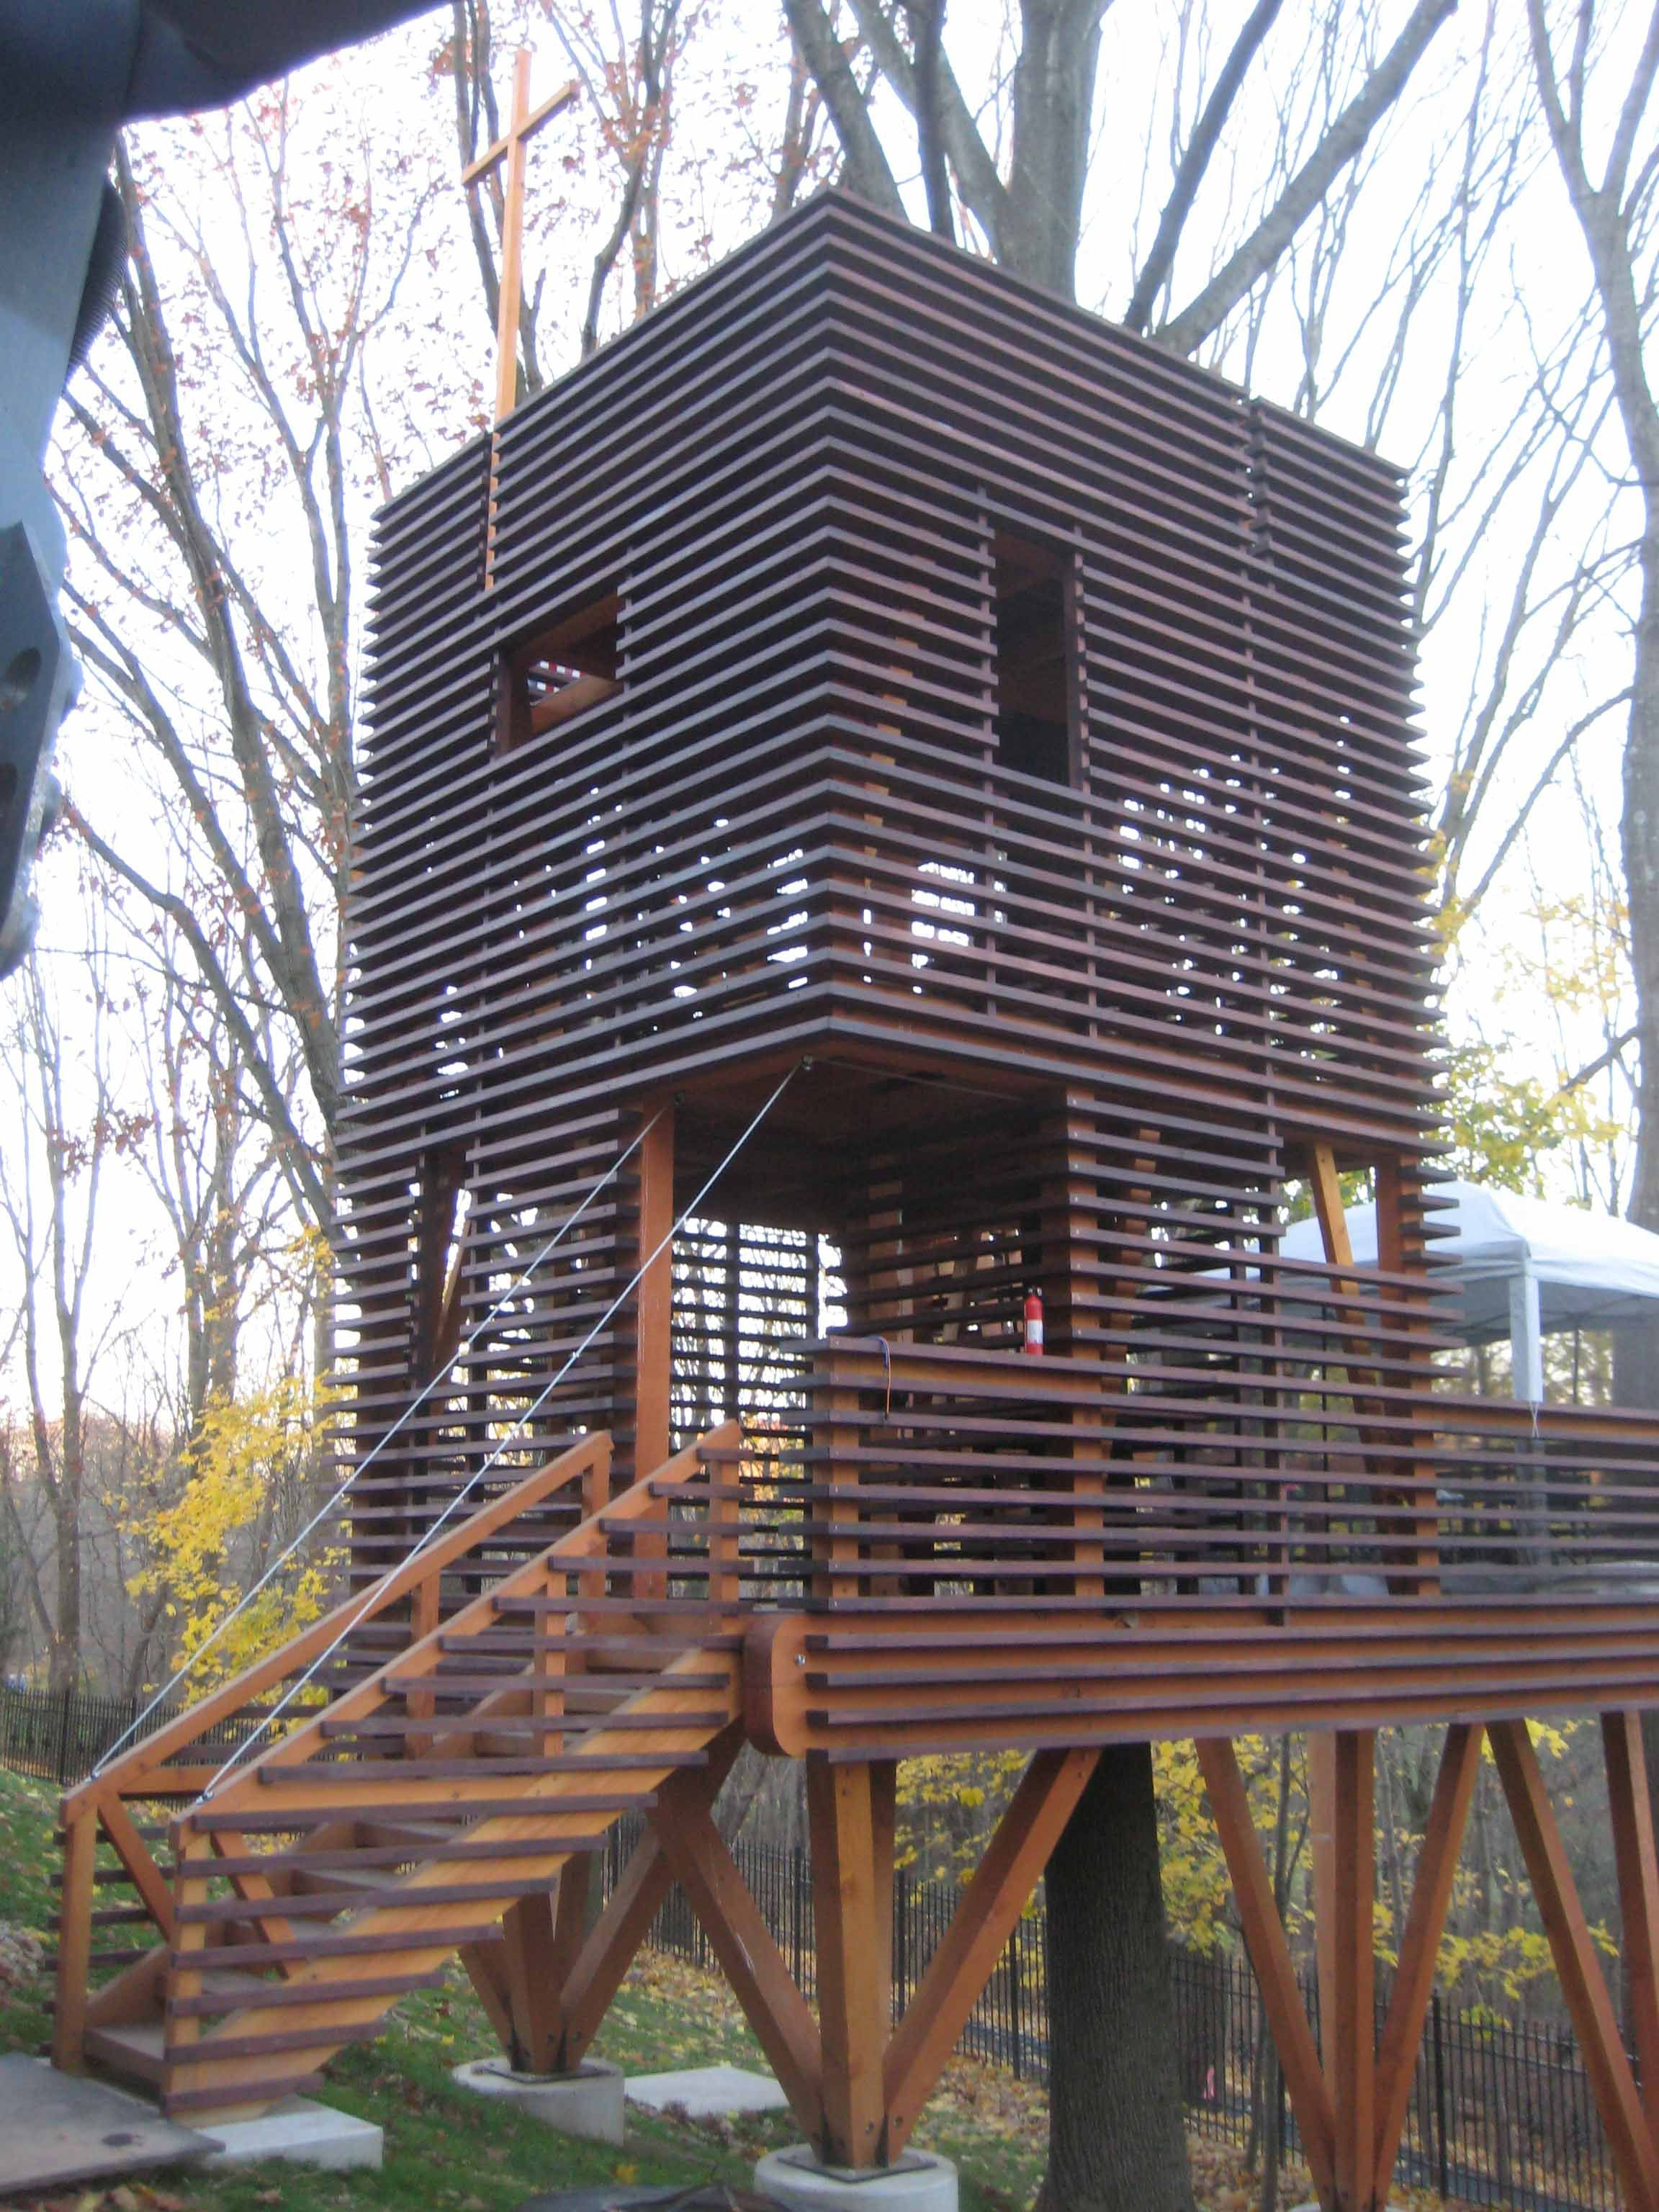 Robinson crusoe style of treehouse timber framed with douglas fir with spani - Robinson crusoe style ...